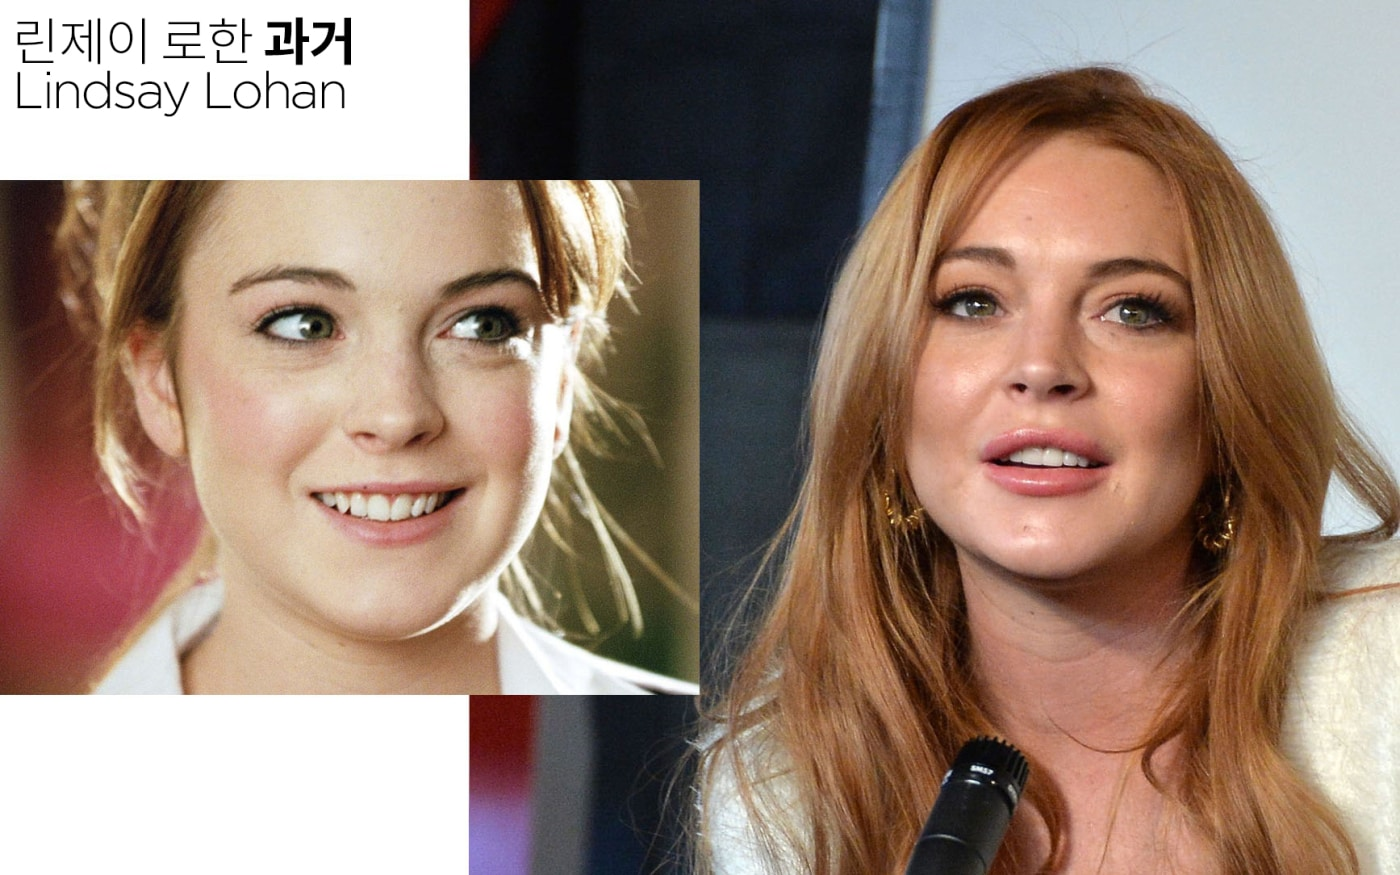 PARK CITY, UT - JANUARY 20:  Actress Lindsay Lohan speaks at the Lindsay Lohan Press Conference at Social Film Loft during the 2014 Park City on January 20, 2014 in Park City, Utah.  (Photo by George Pimentel/Getty Images)